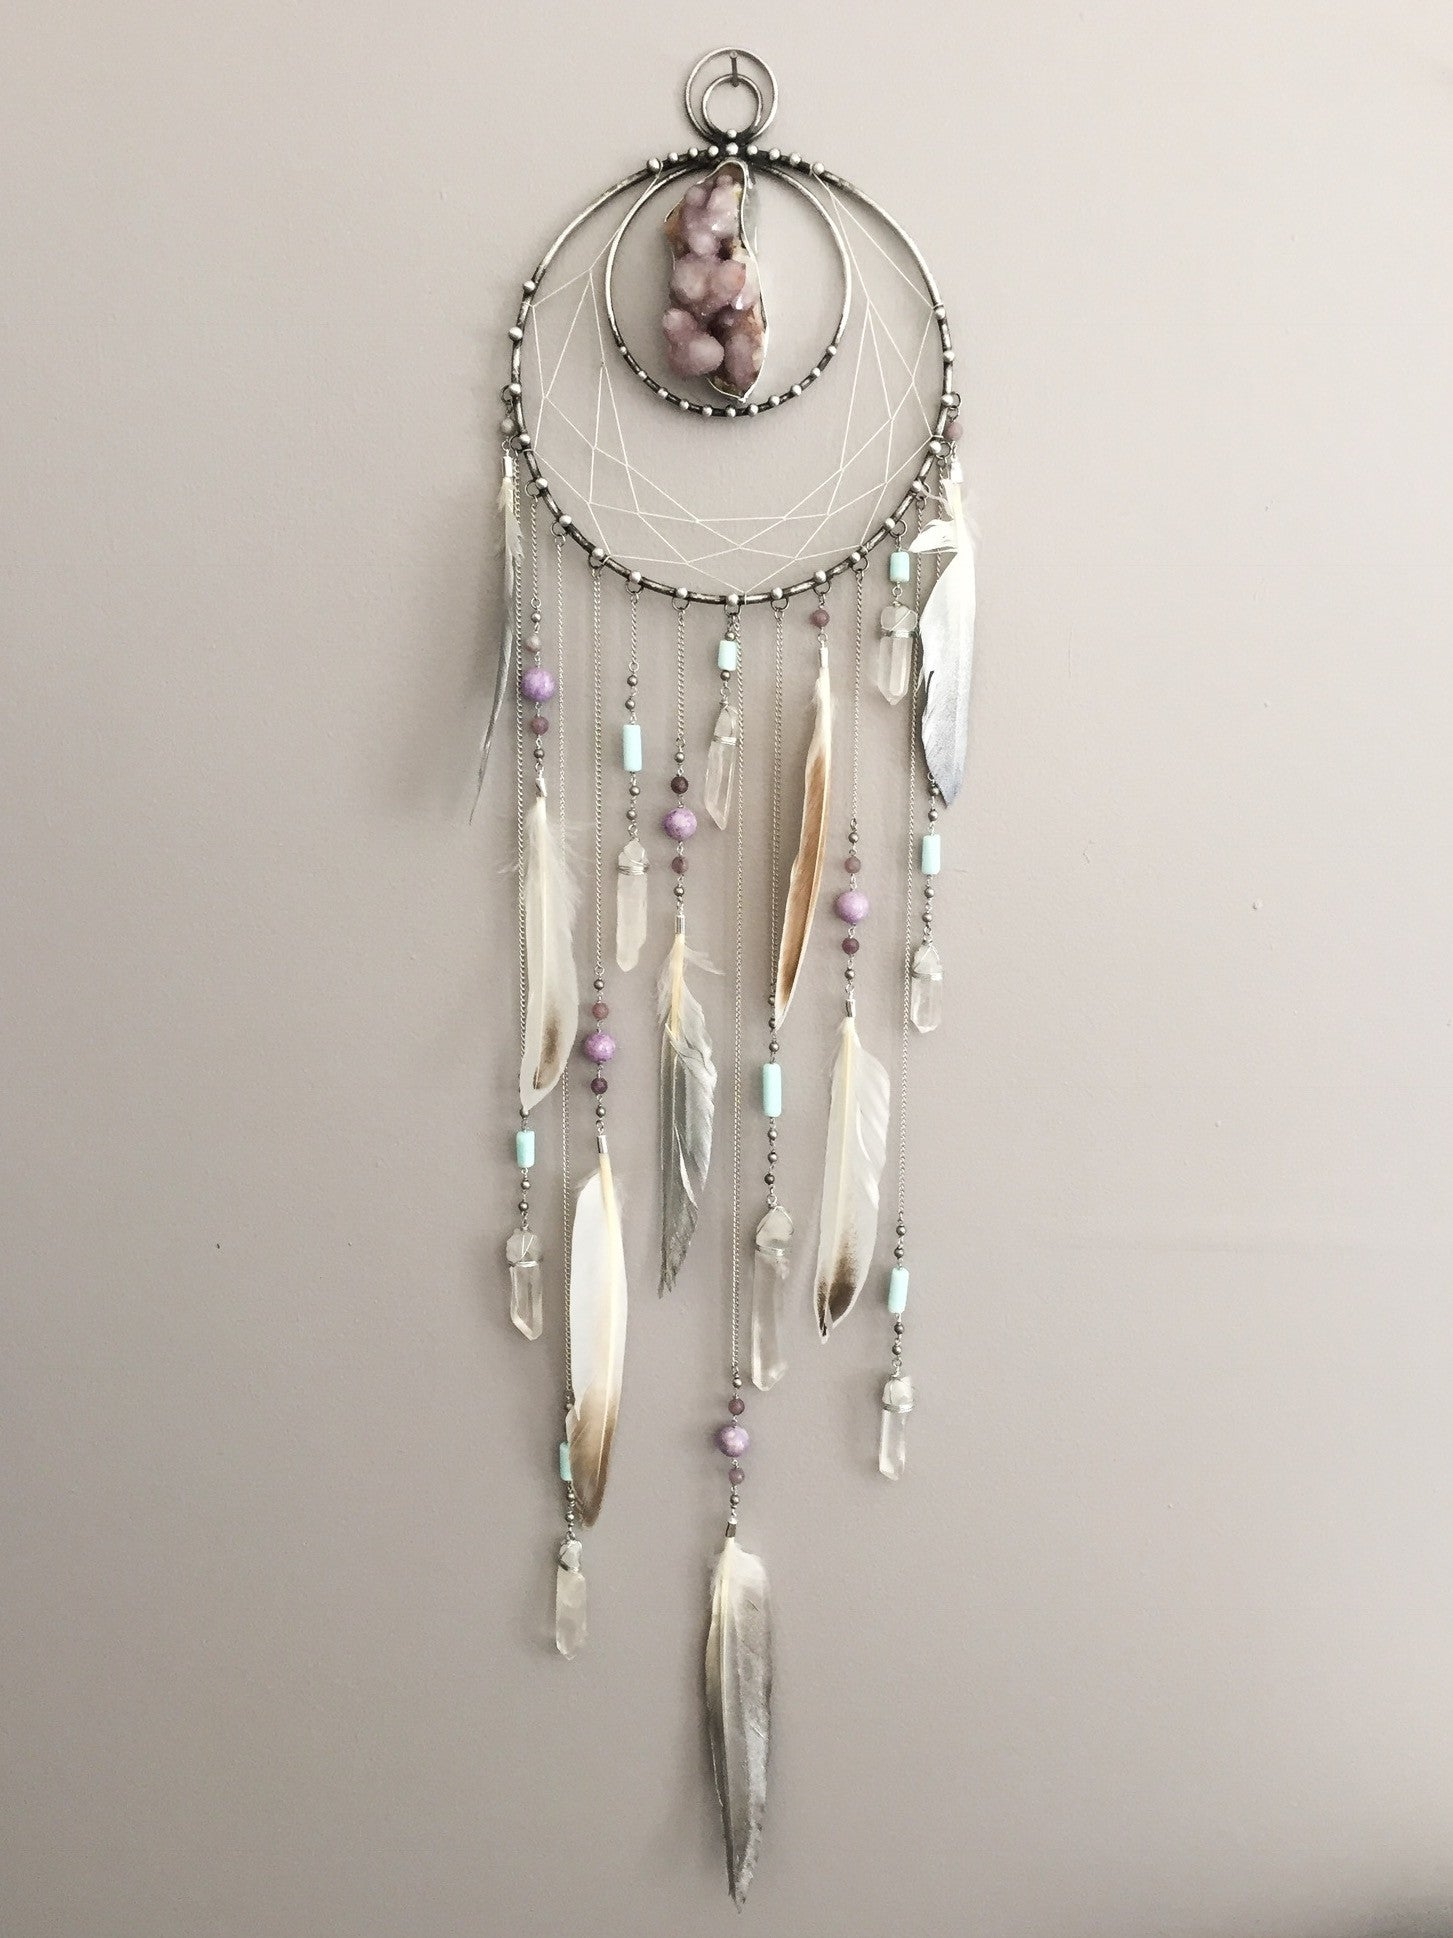 Anchoring the Light dreamcatcher